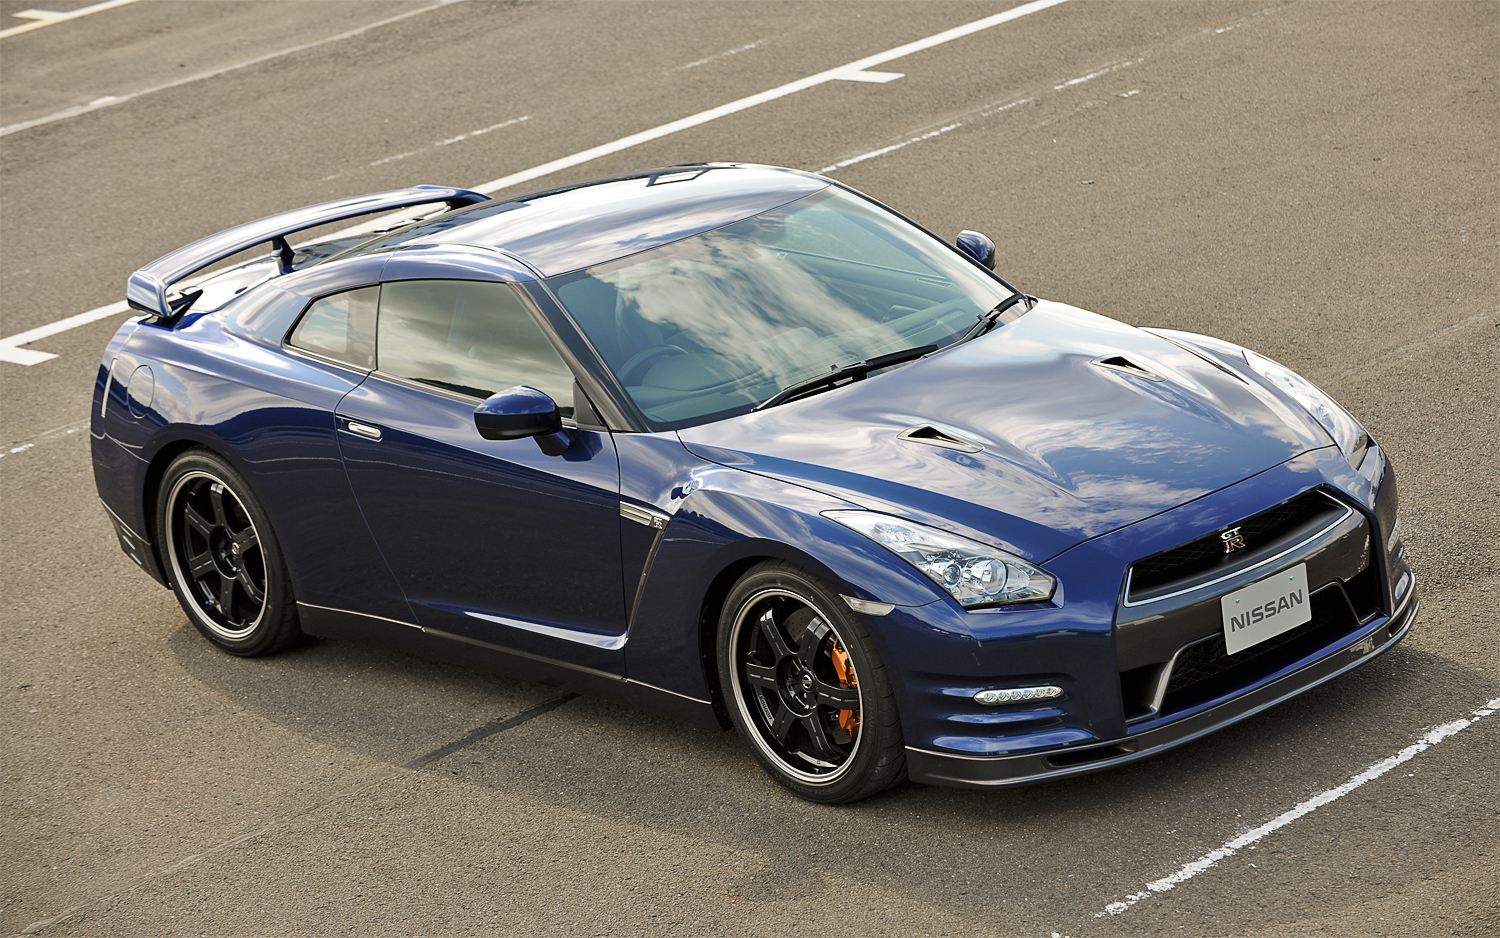 The clarkson review: 2015 nissan gt-r track edition.